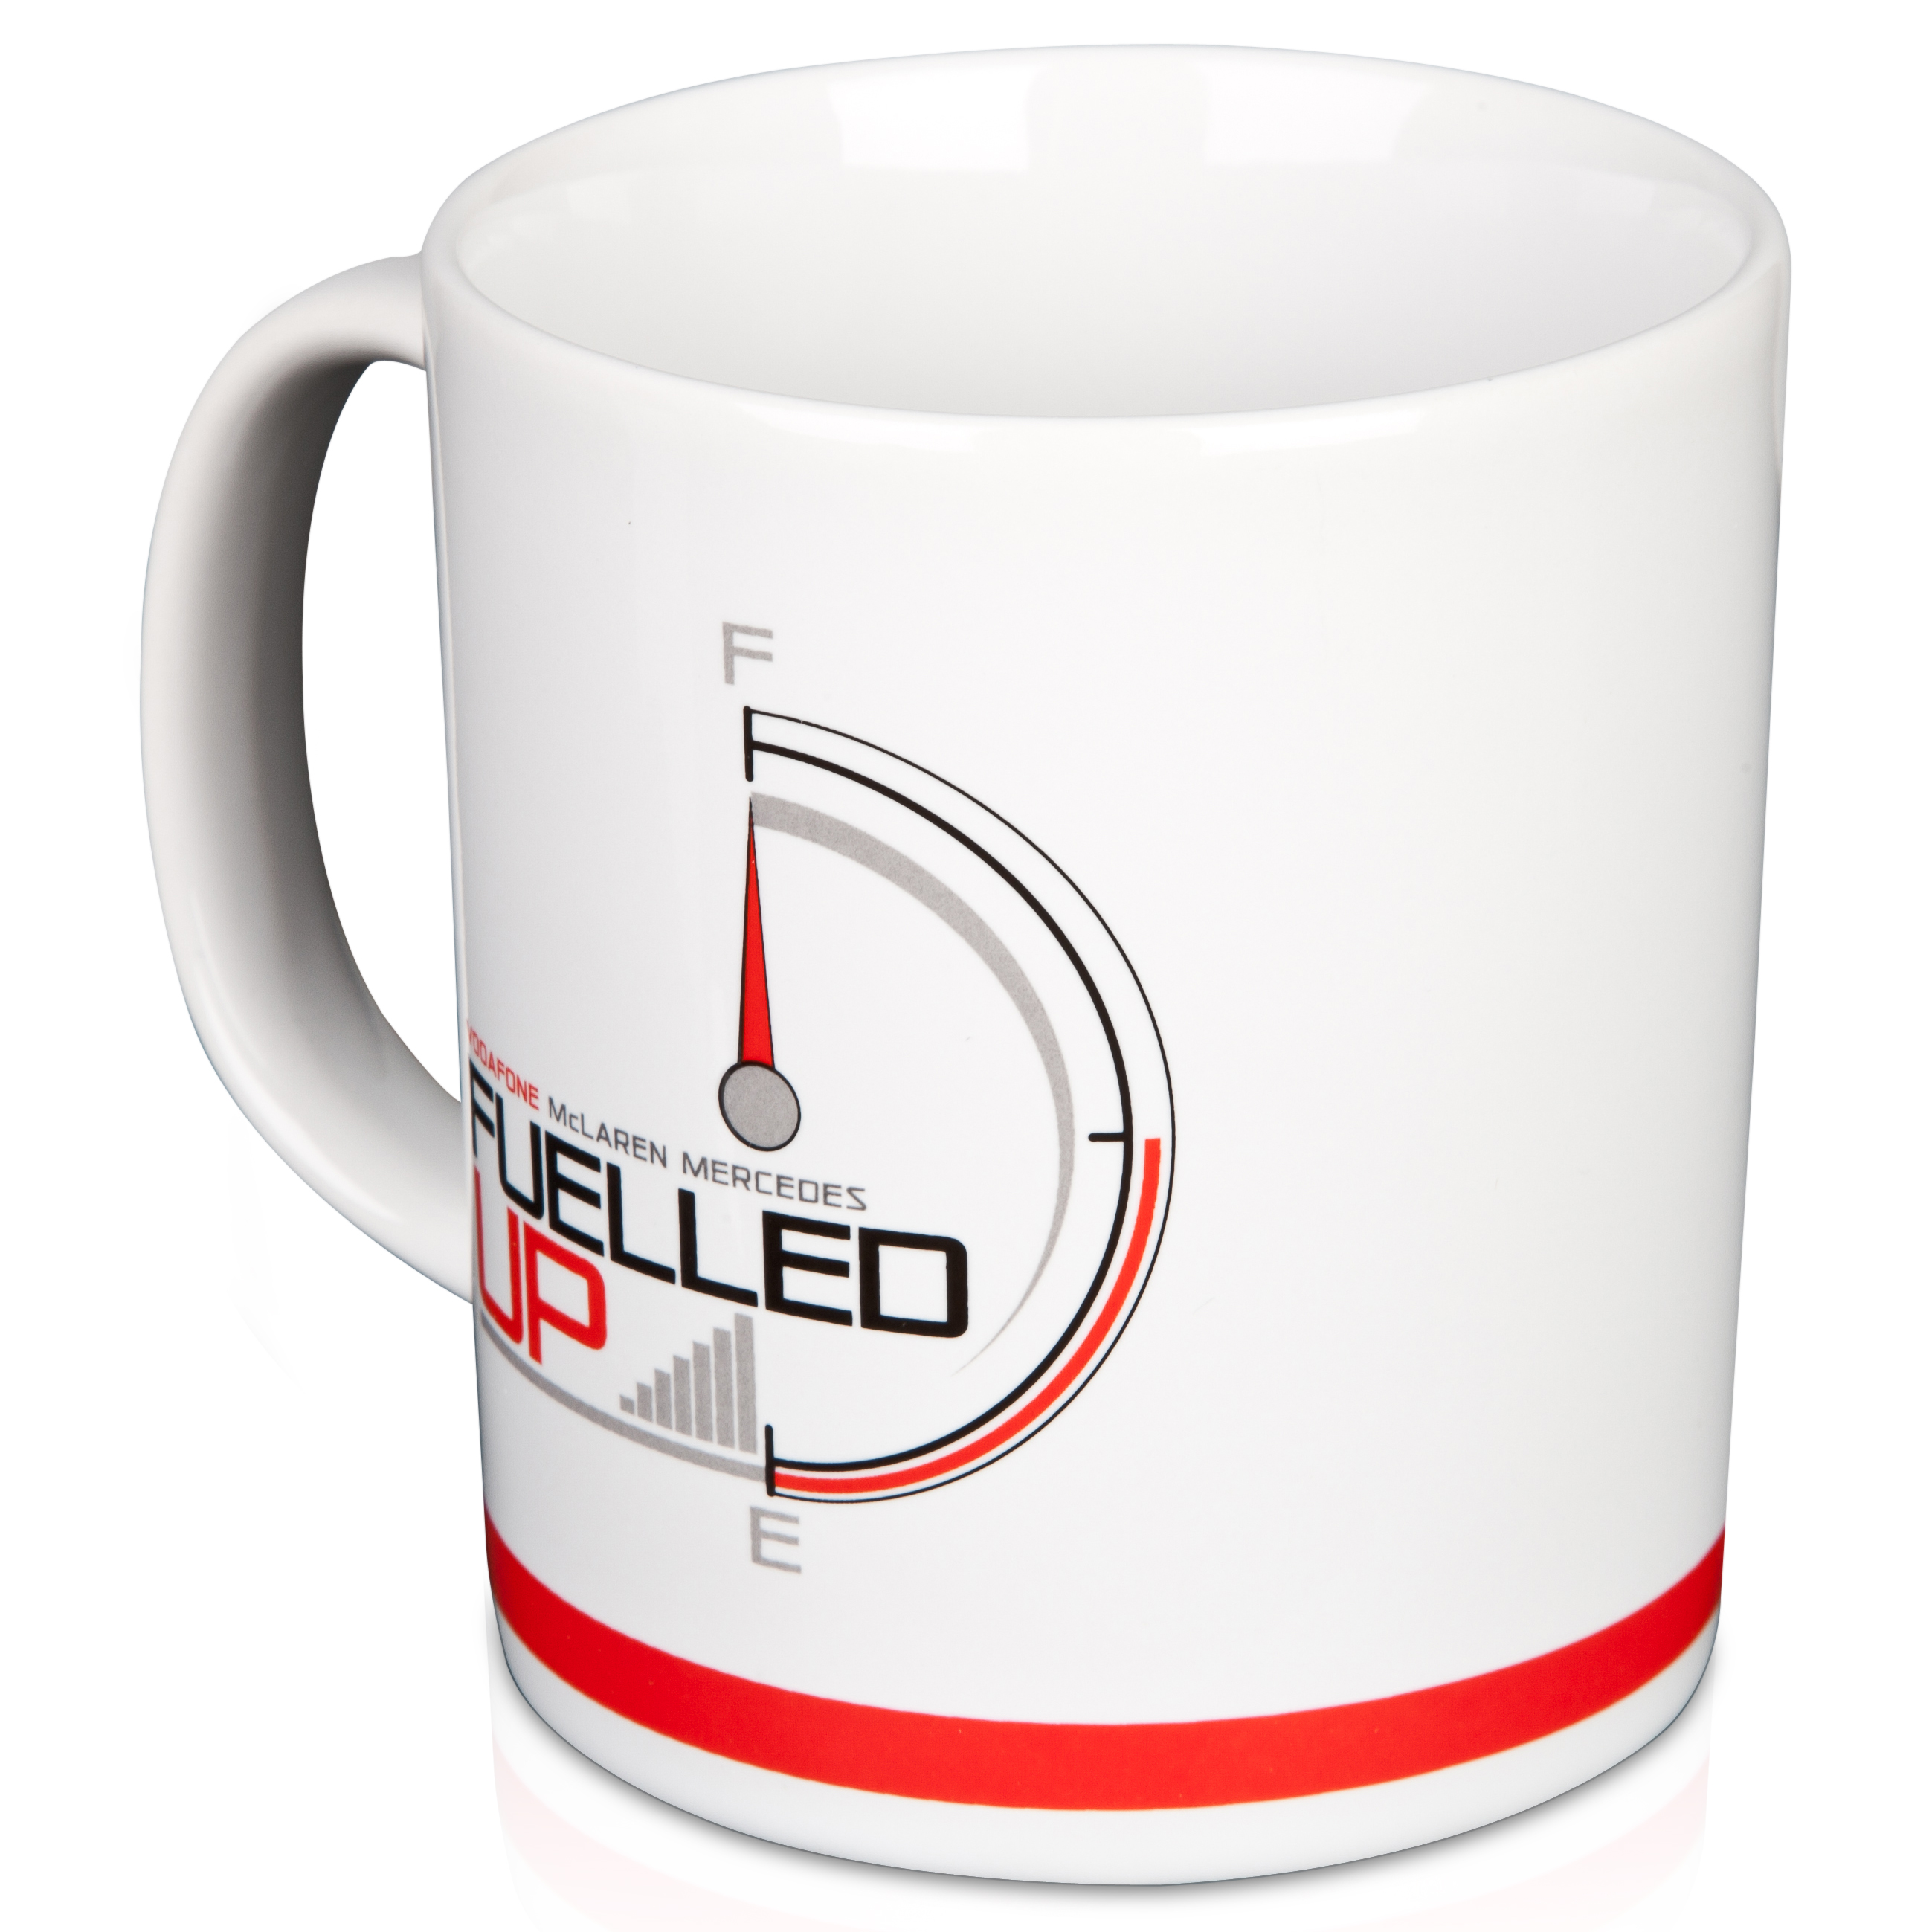 Vodafone McLaren Mercedes Fuelled Up Mug